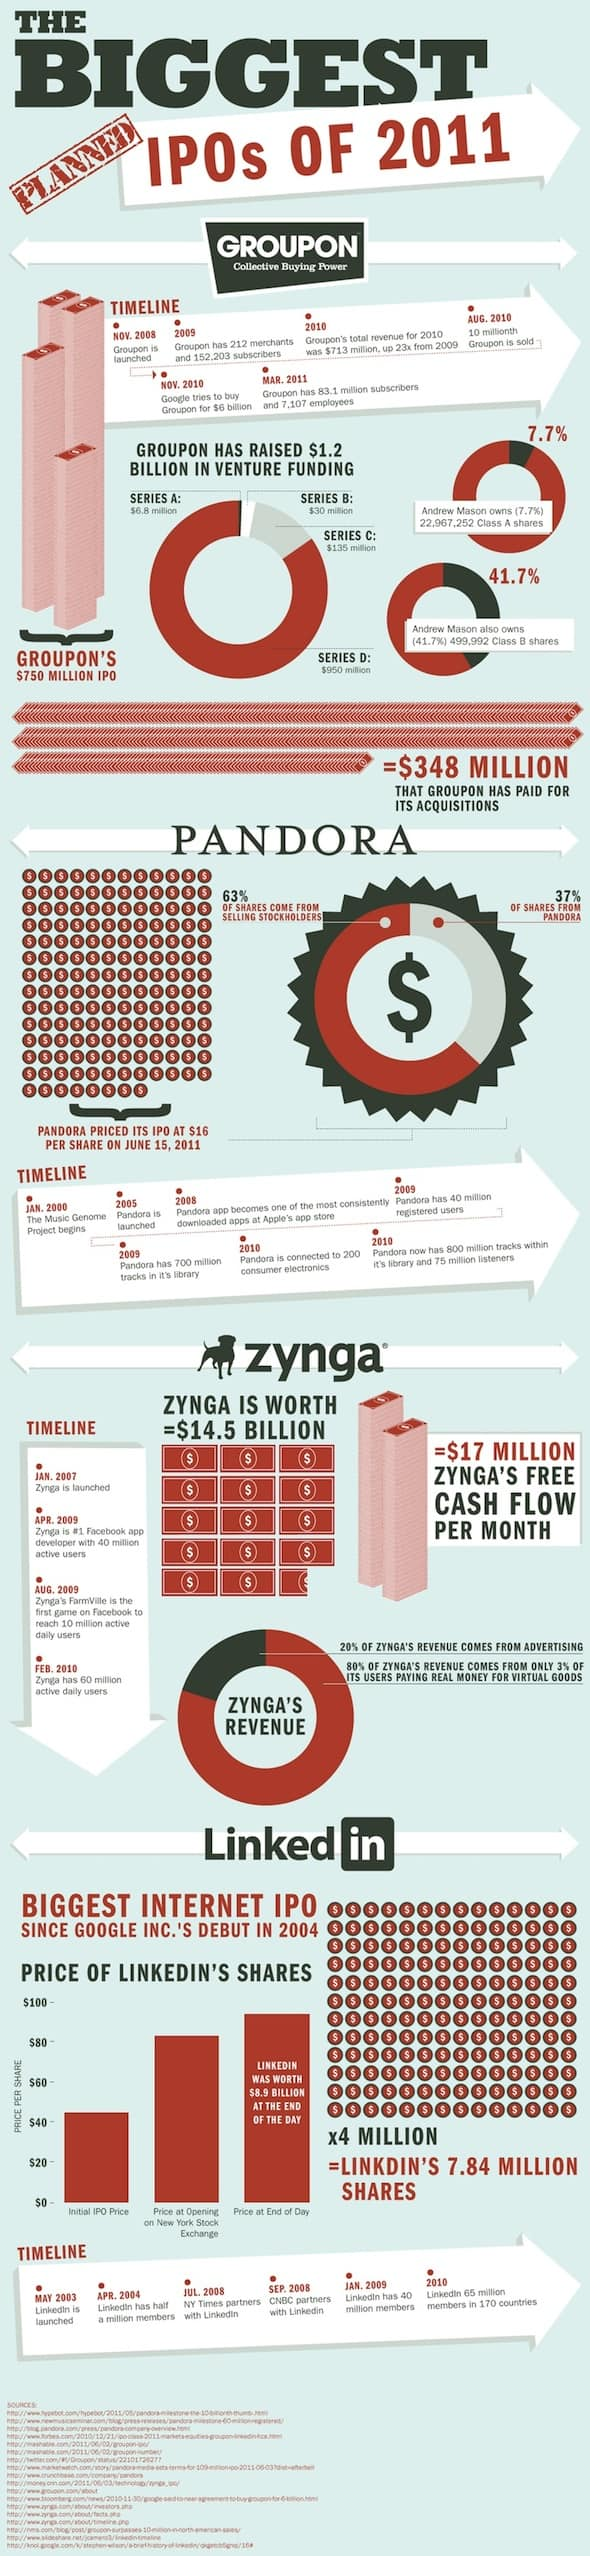 Biggest IPOs of 2011 infographic